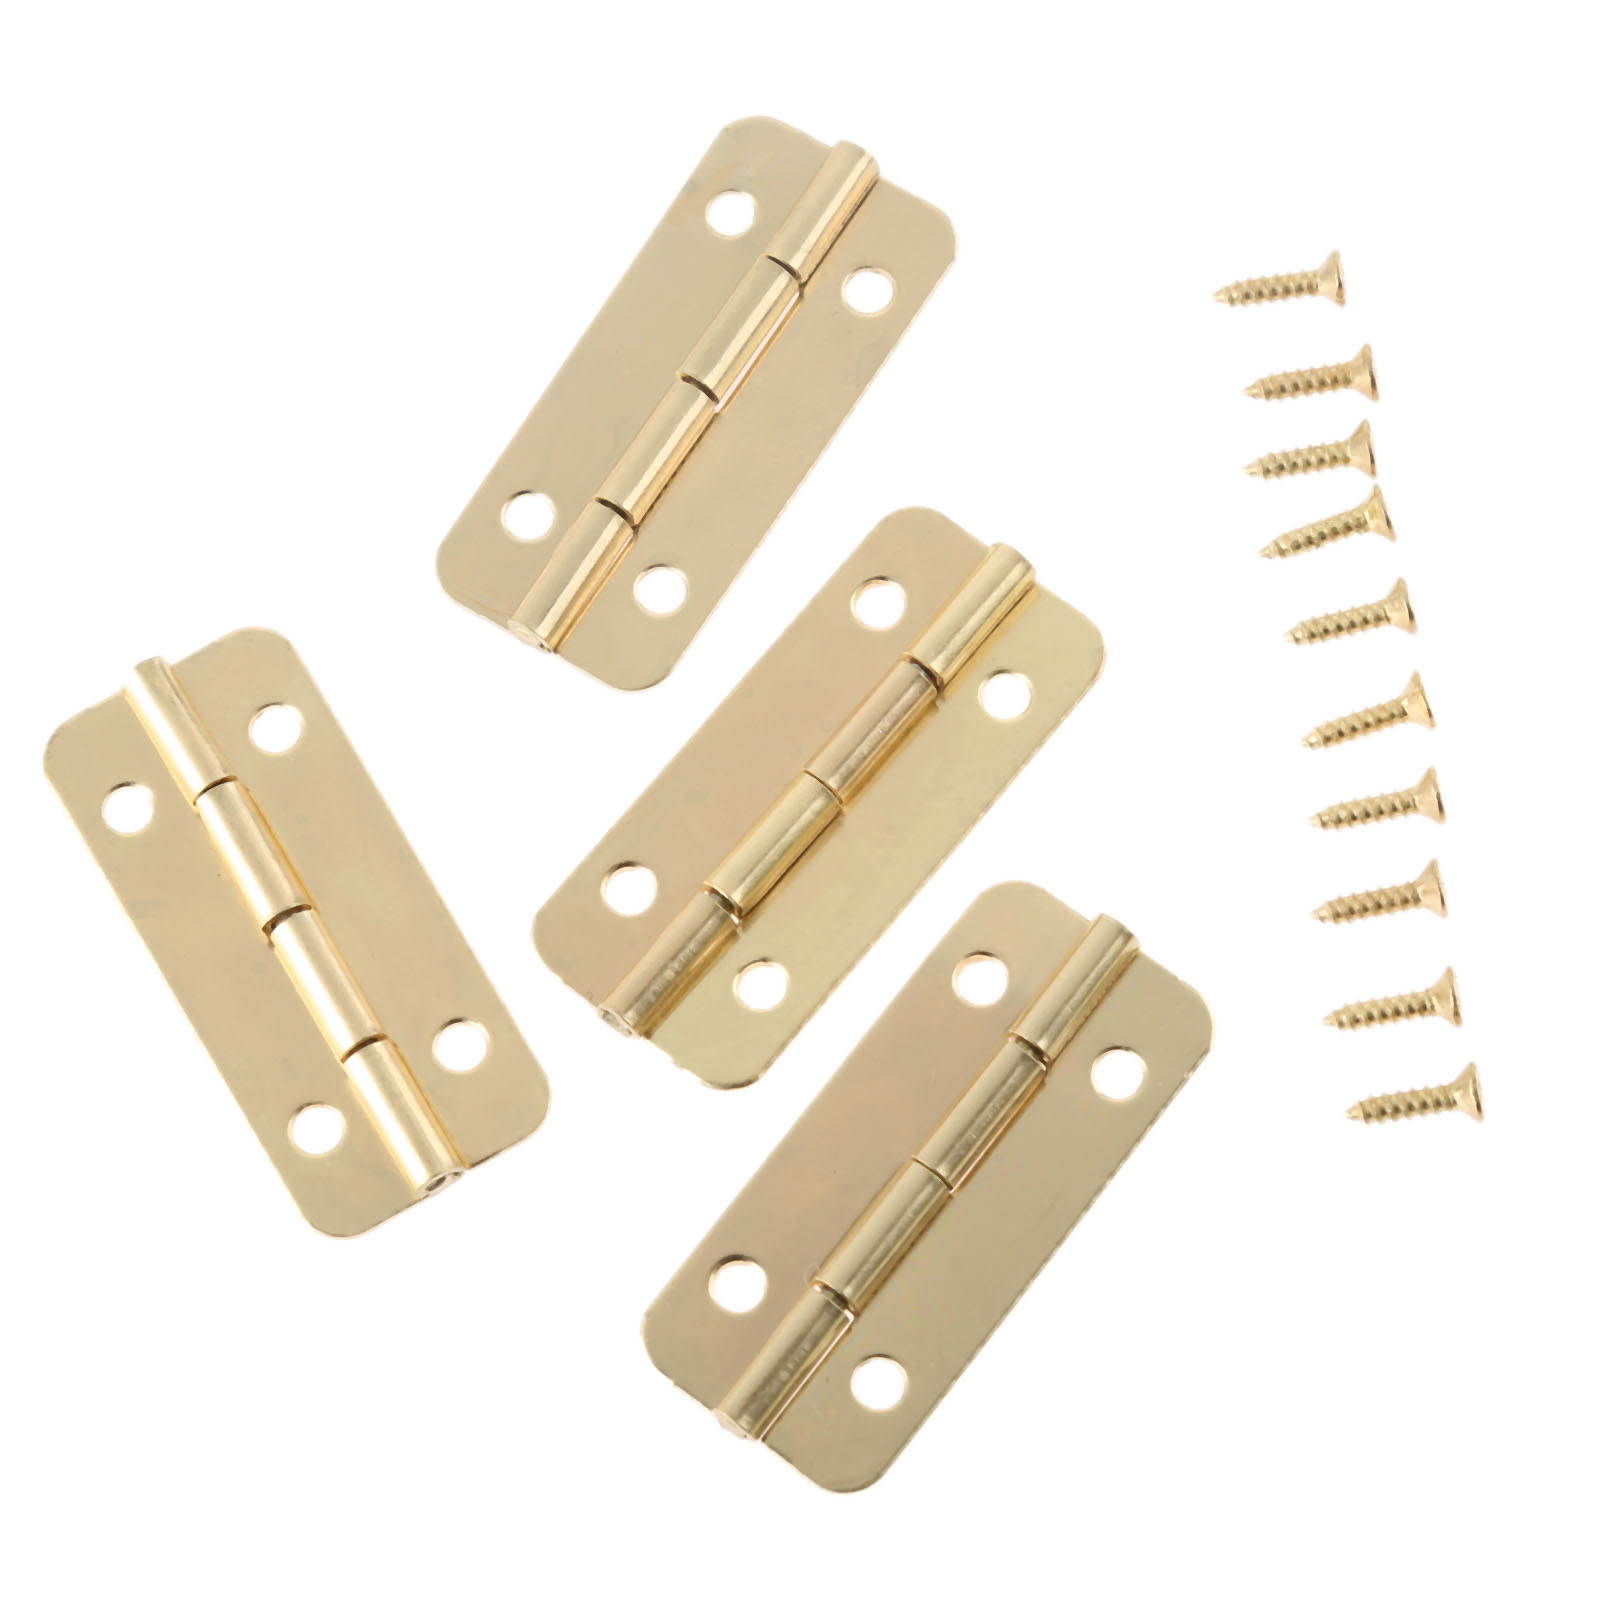 4Pcs 37mmx17mm Gold Furniture Hinges for Box Door Butt Decorative Small Hinge for Cabinet Drawer Furniture Hardware with Screws